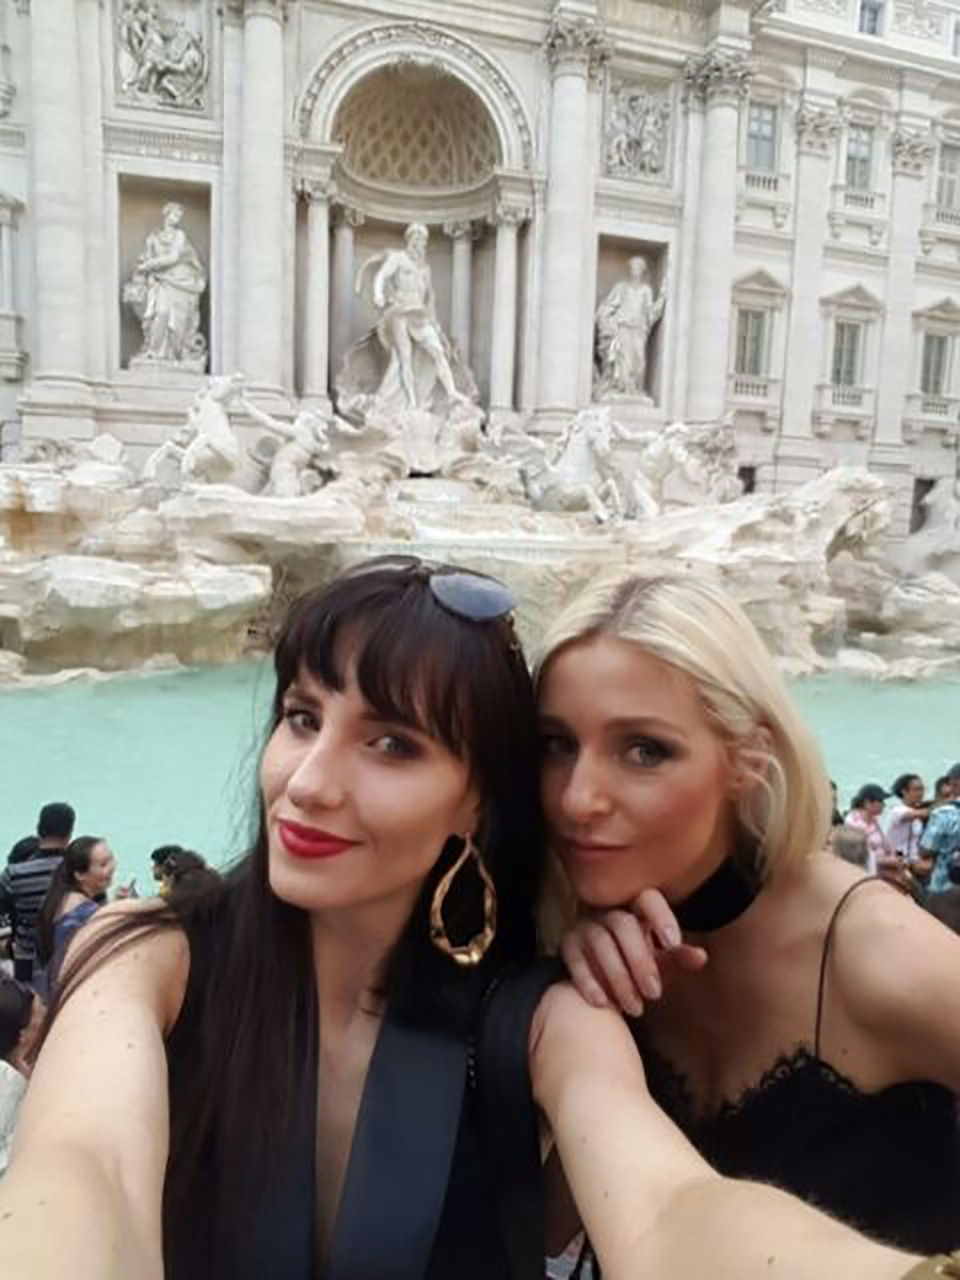 rome-italy-travel-blogger-amanda-custo-best-bloggers-johannesburg-south-africa-best-places-in-rome-006c.jpg